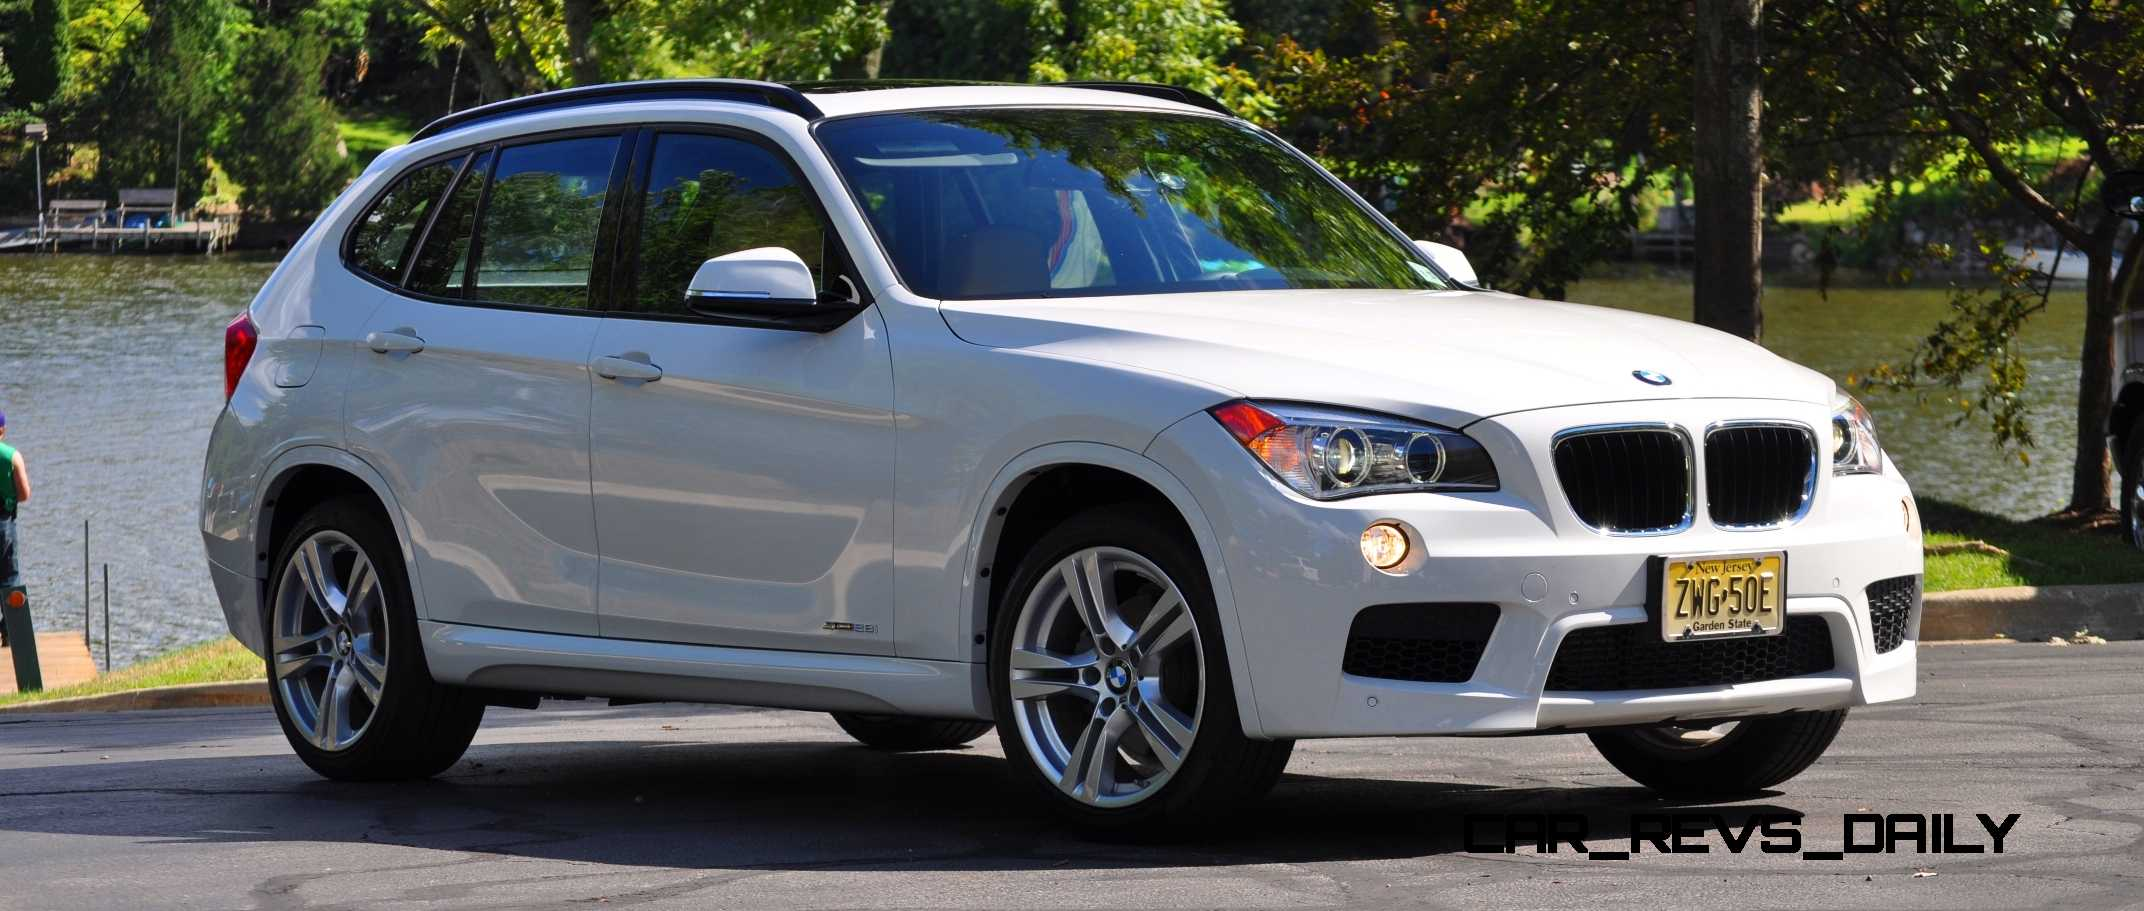 bmw x1 sdrive28i m sport alpine white in 60 high res photos. Black Bedroom Furniture Sets. Home Design Ideas